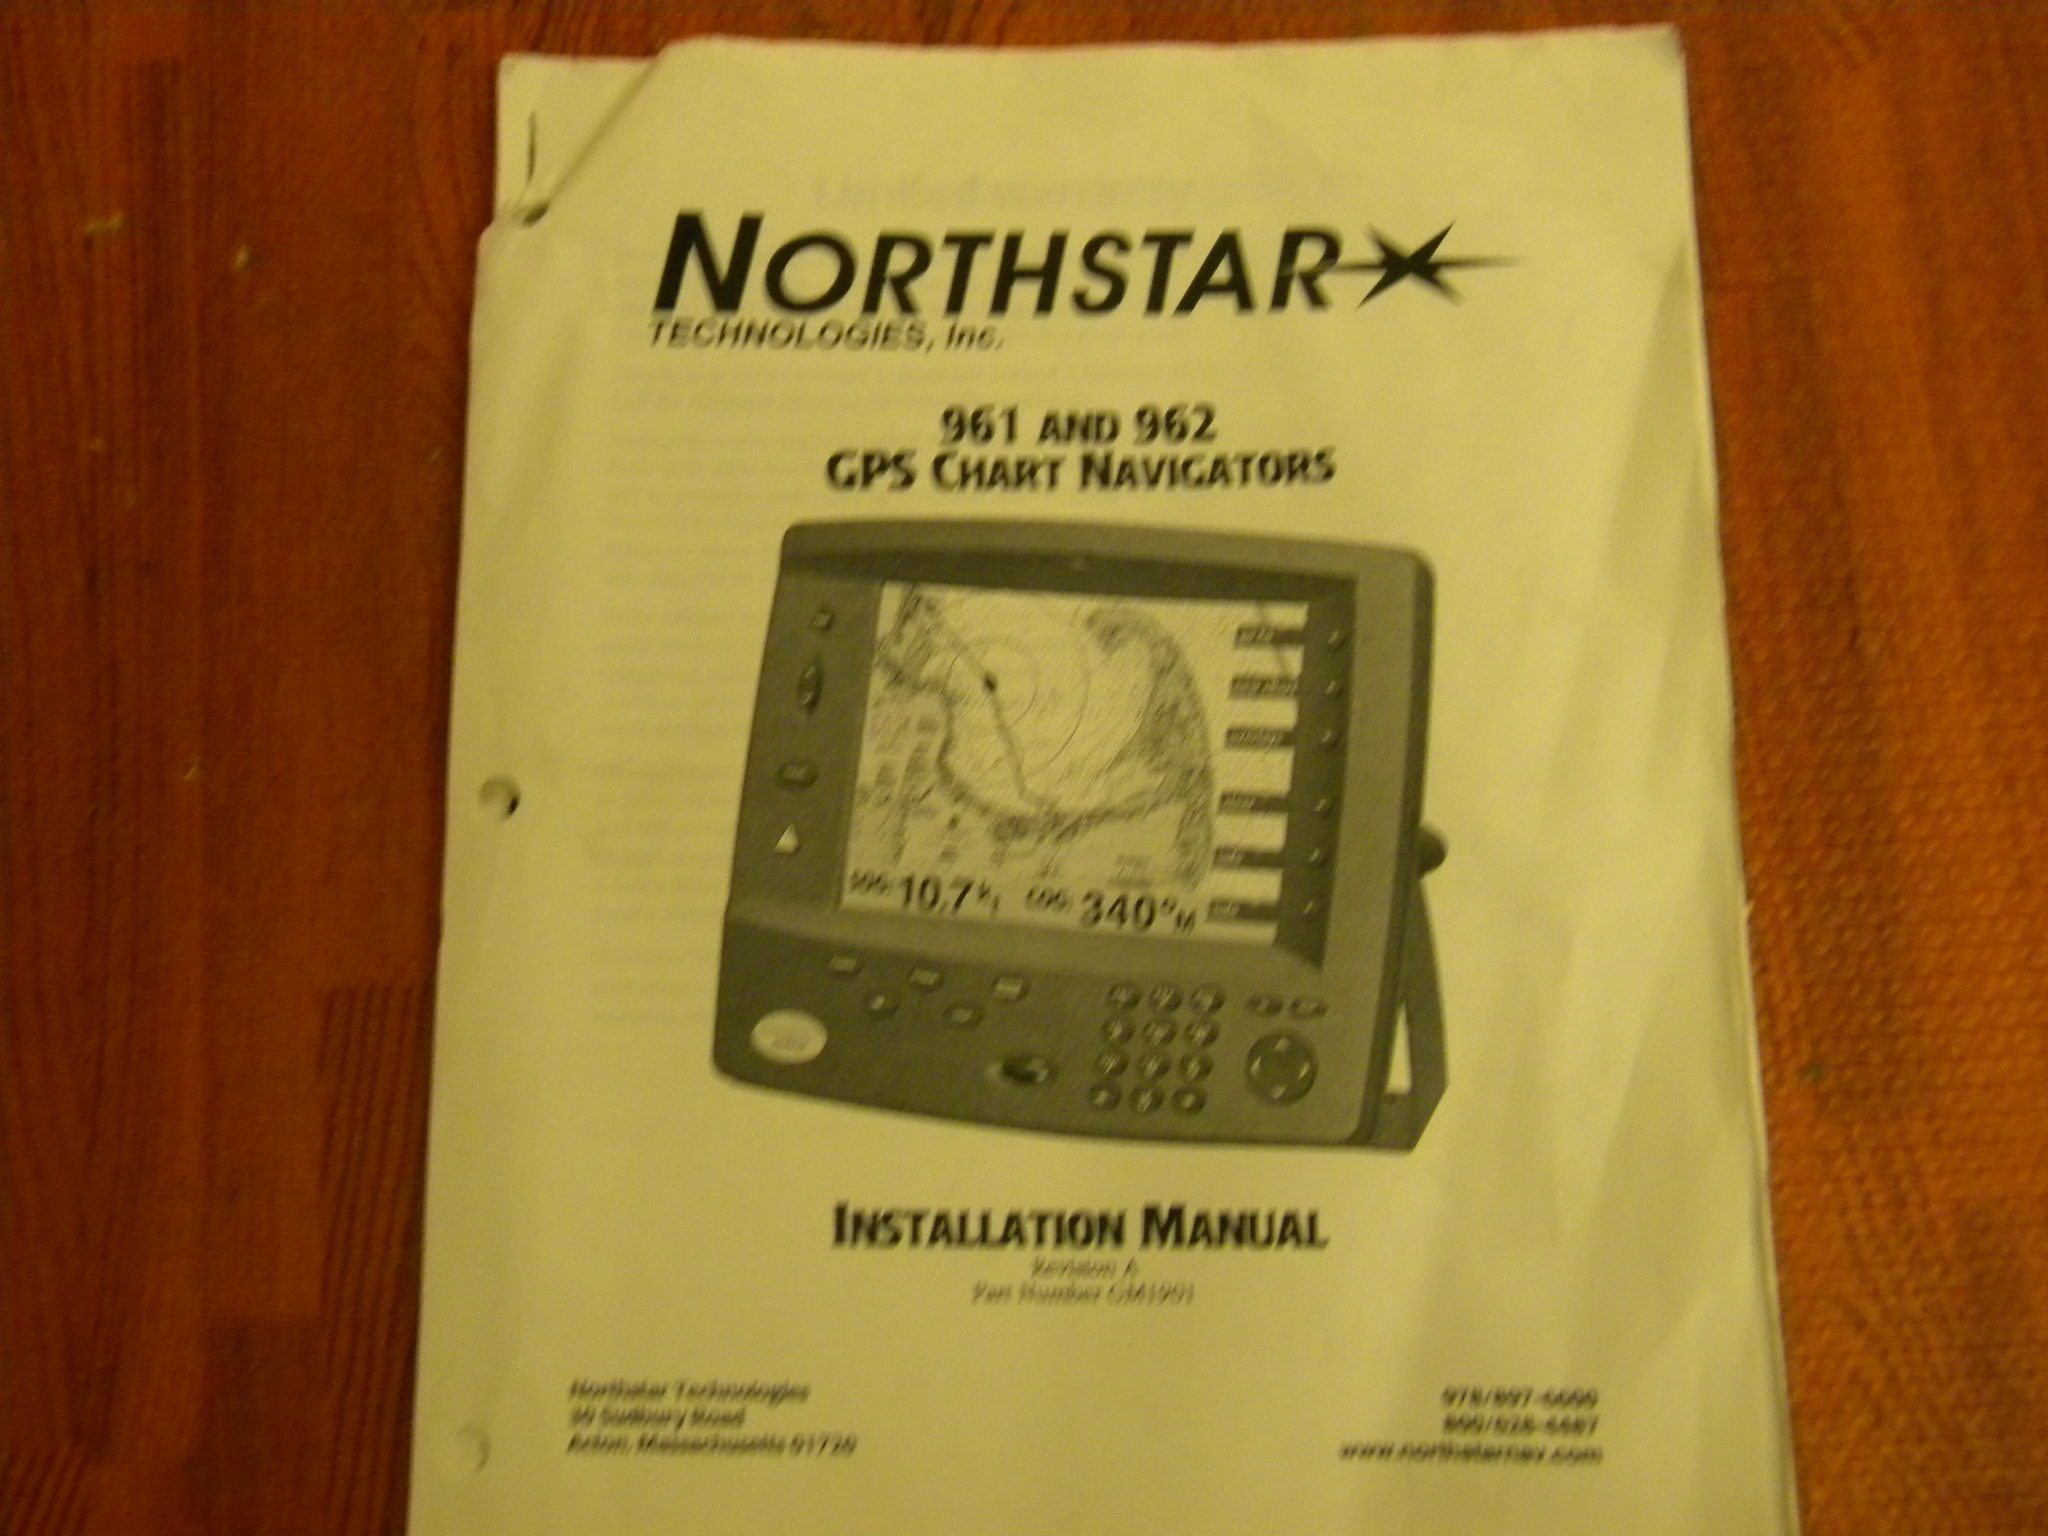 northstar 961 962 gps chart navigators installations manual rev a rh maxmarineelectronics com northstar 550 gps manual northstar 6000i gps manual